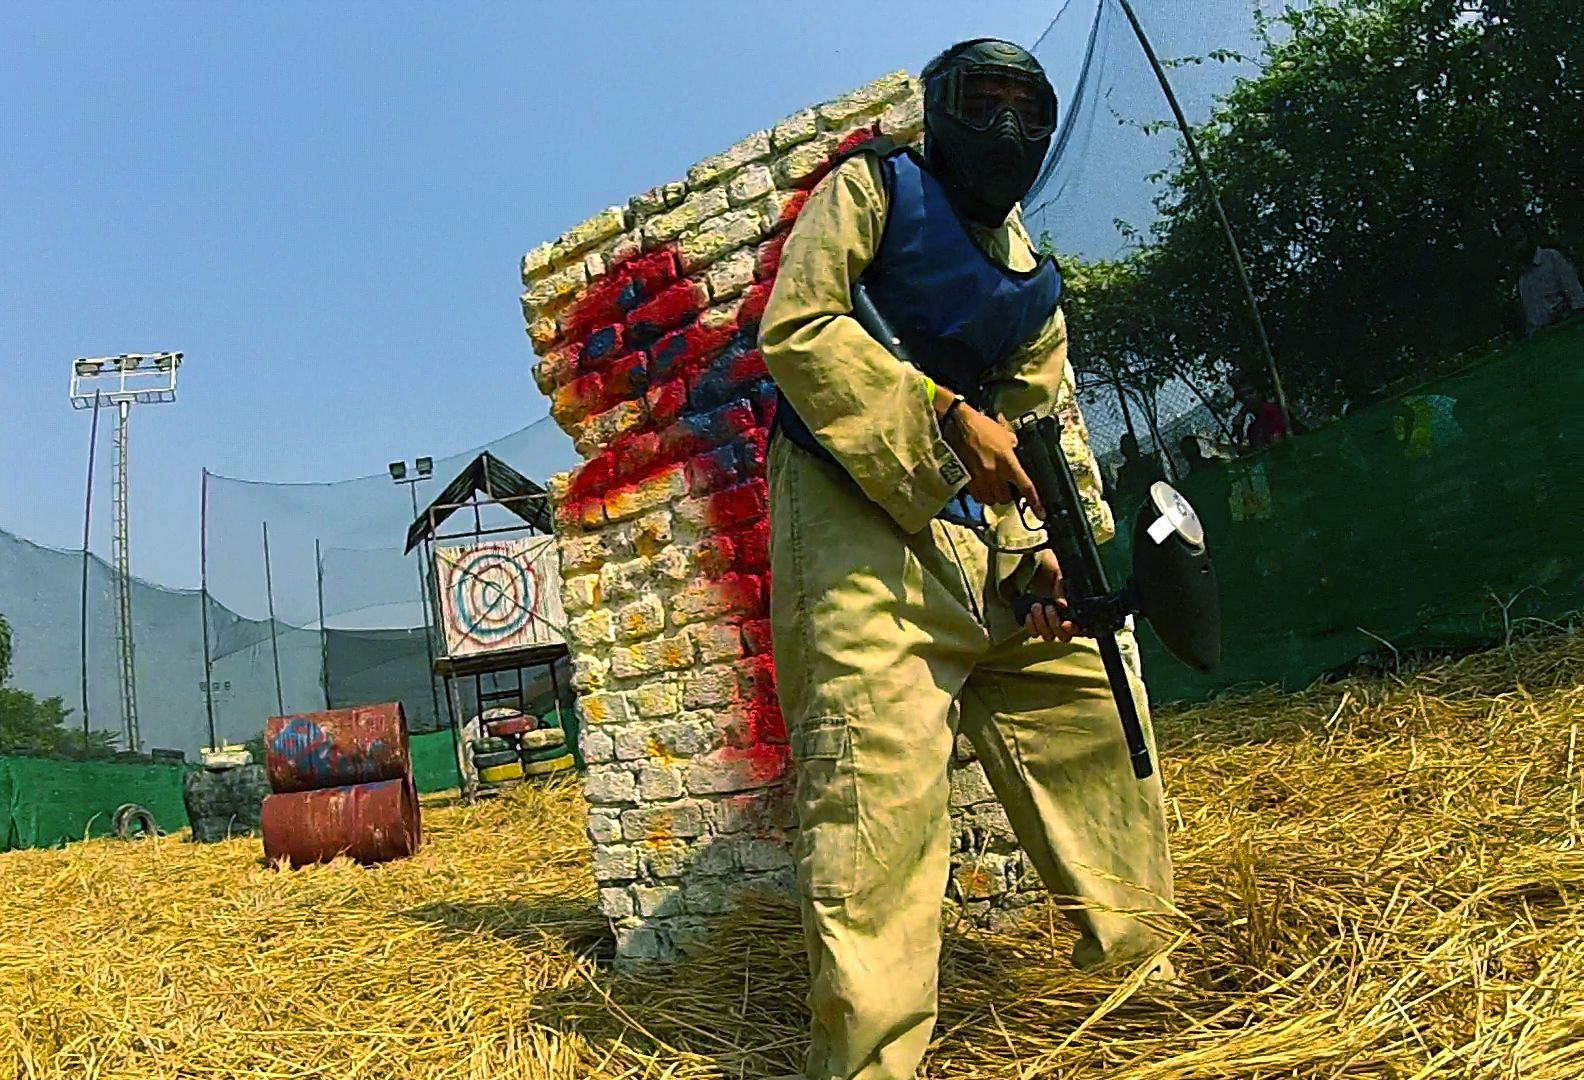 The #Headrush #Paintball : Clash of Nations